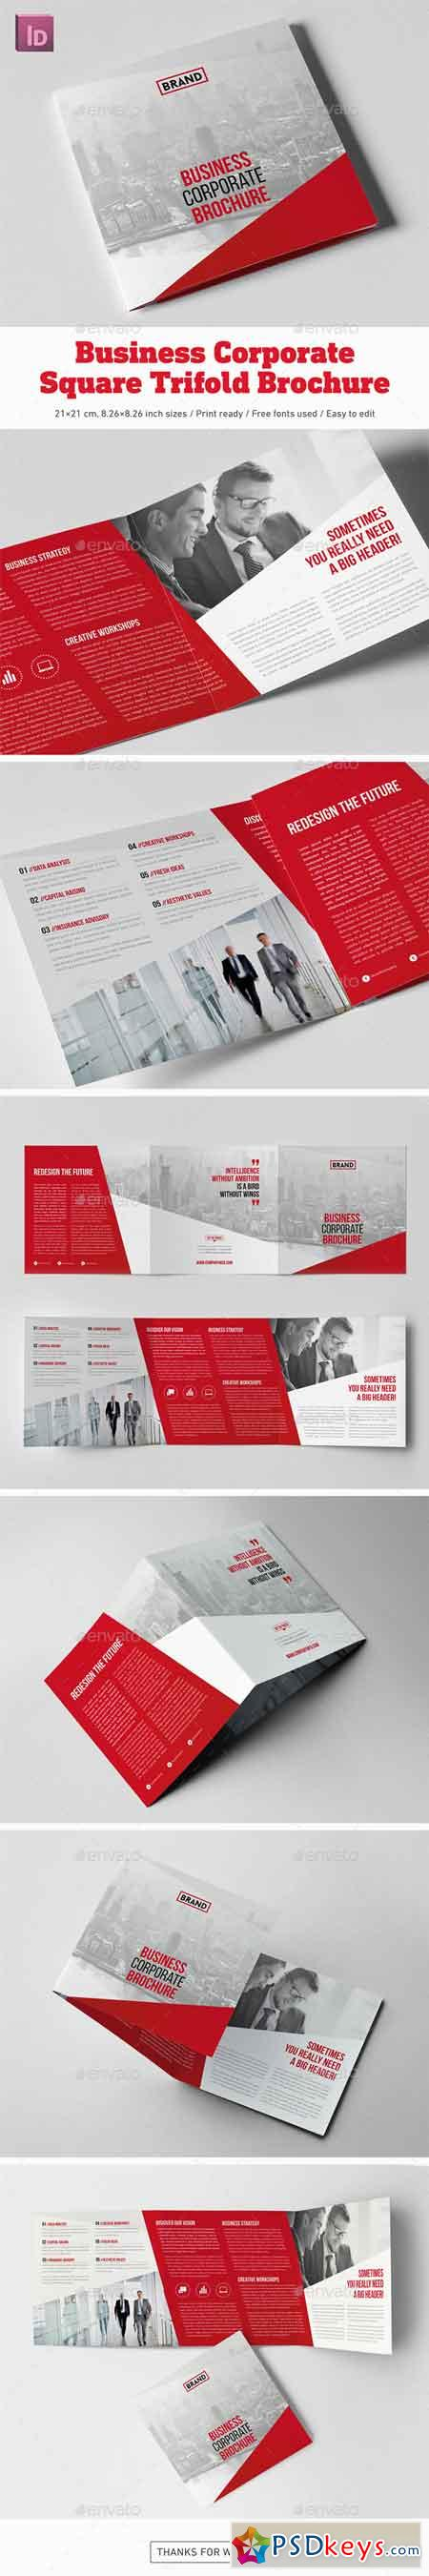 Business Corporate Square Trifold Brochure 20239753 » Free